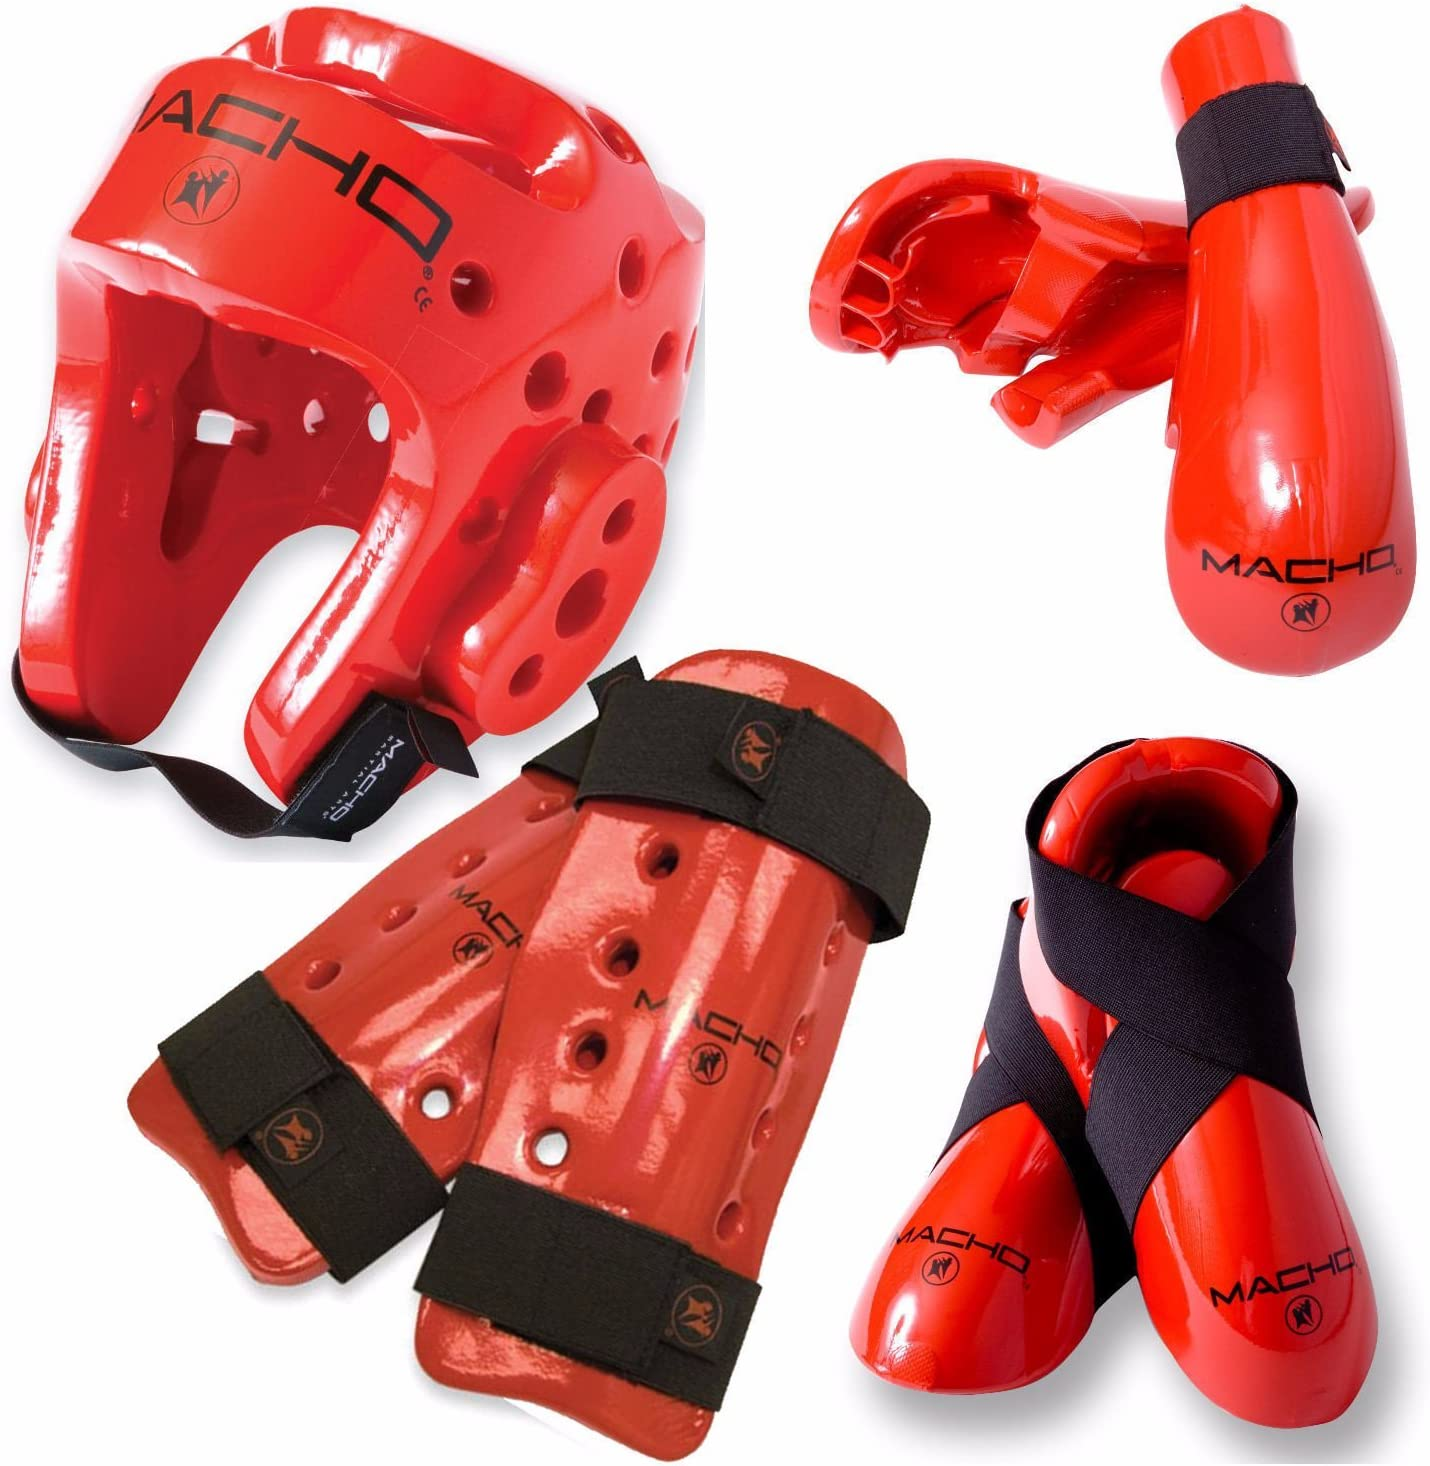 Macho Dyna Martial Arts// Karate 7PC Sparring Gear Set